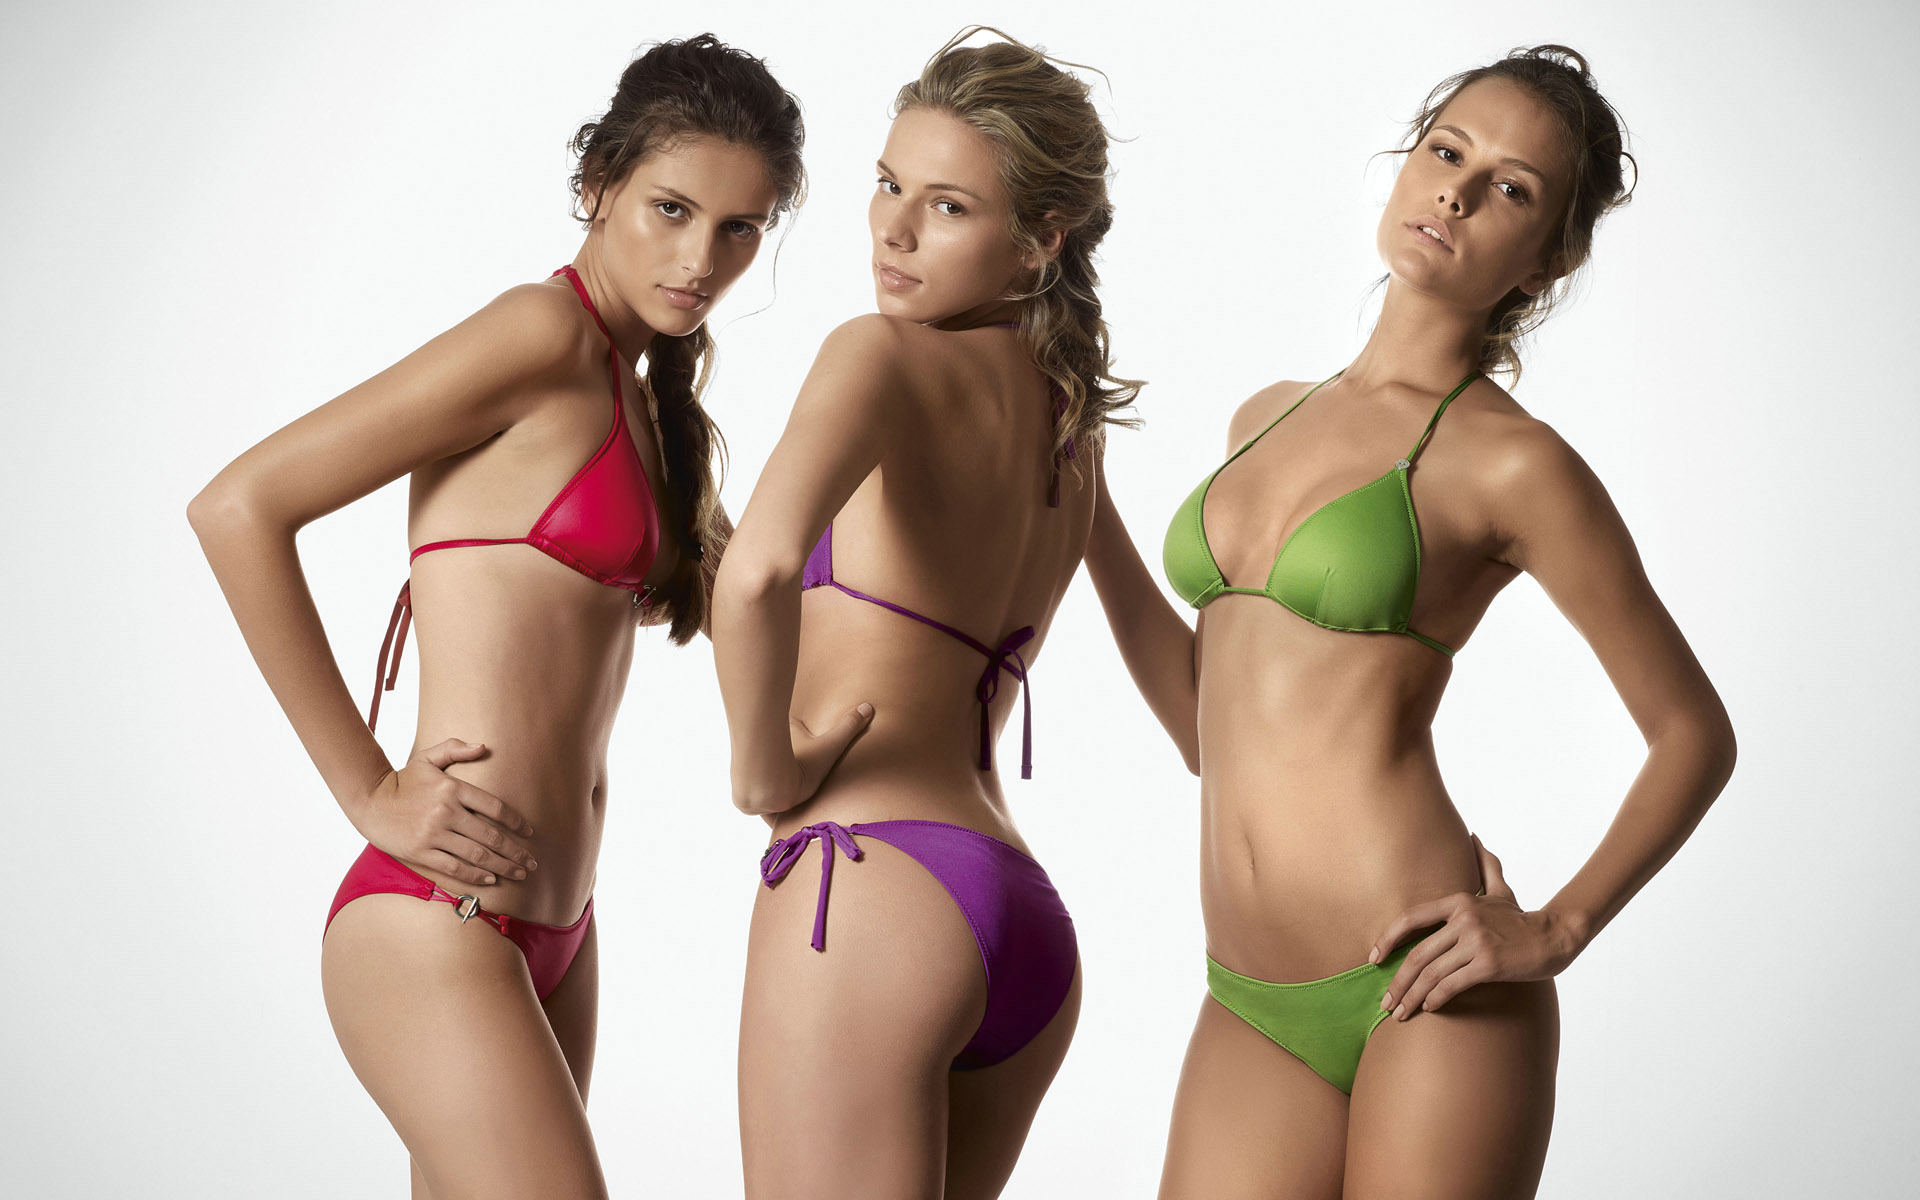 Sorry, Three hot girls bikinis